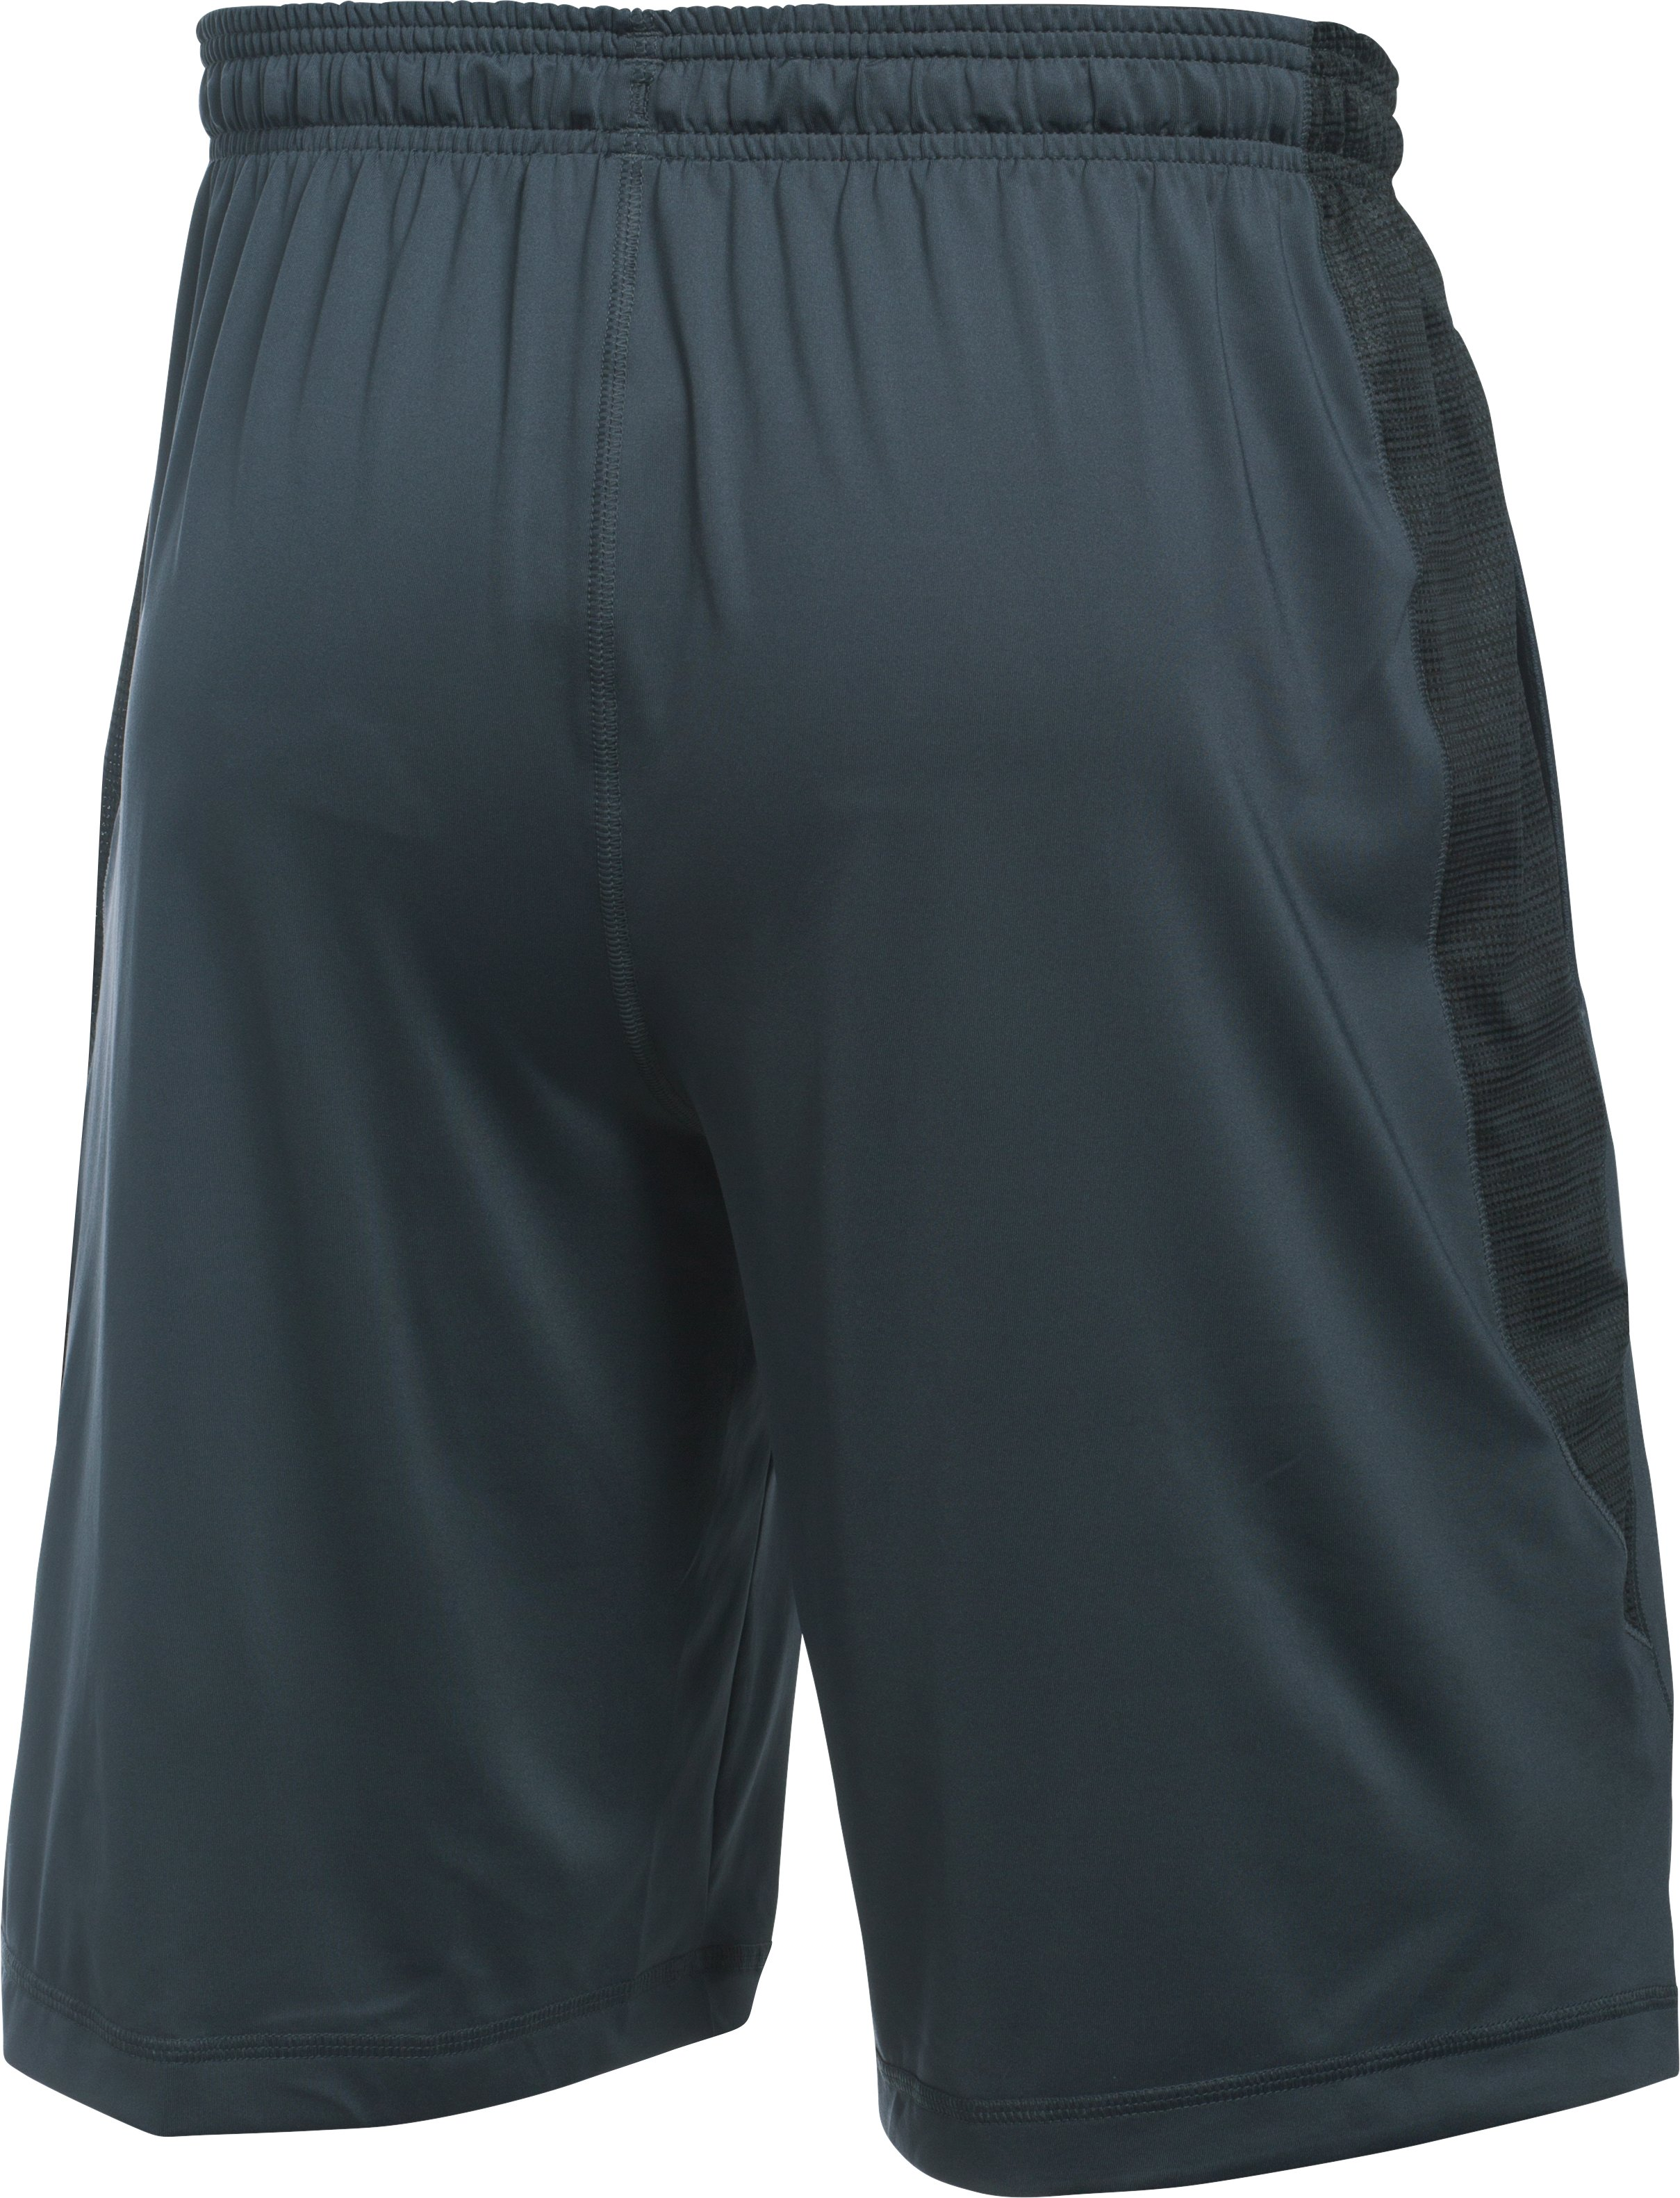 Men's UA Football Training Shorts, STEALTH GRAY